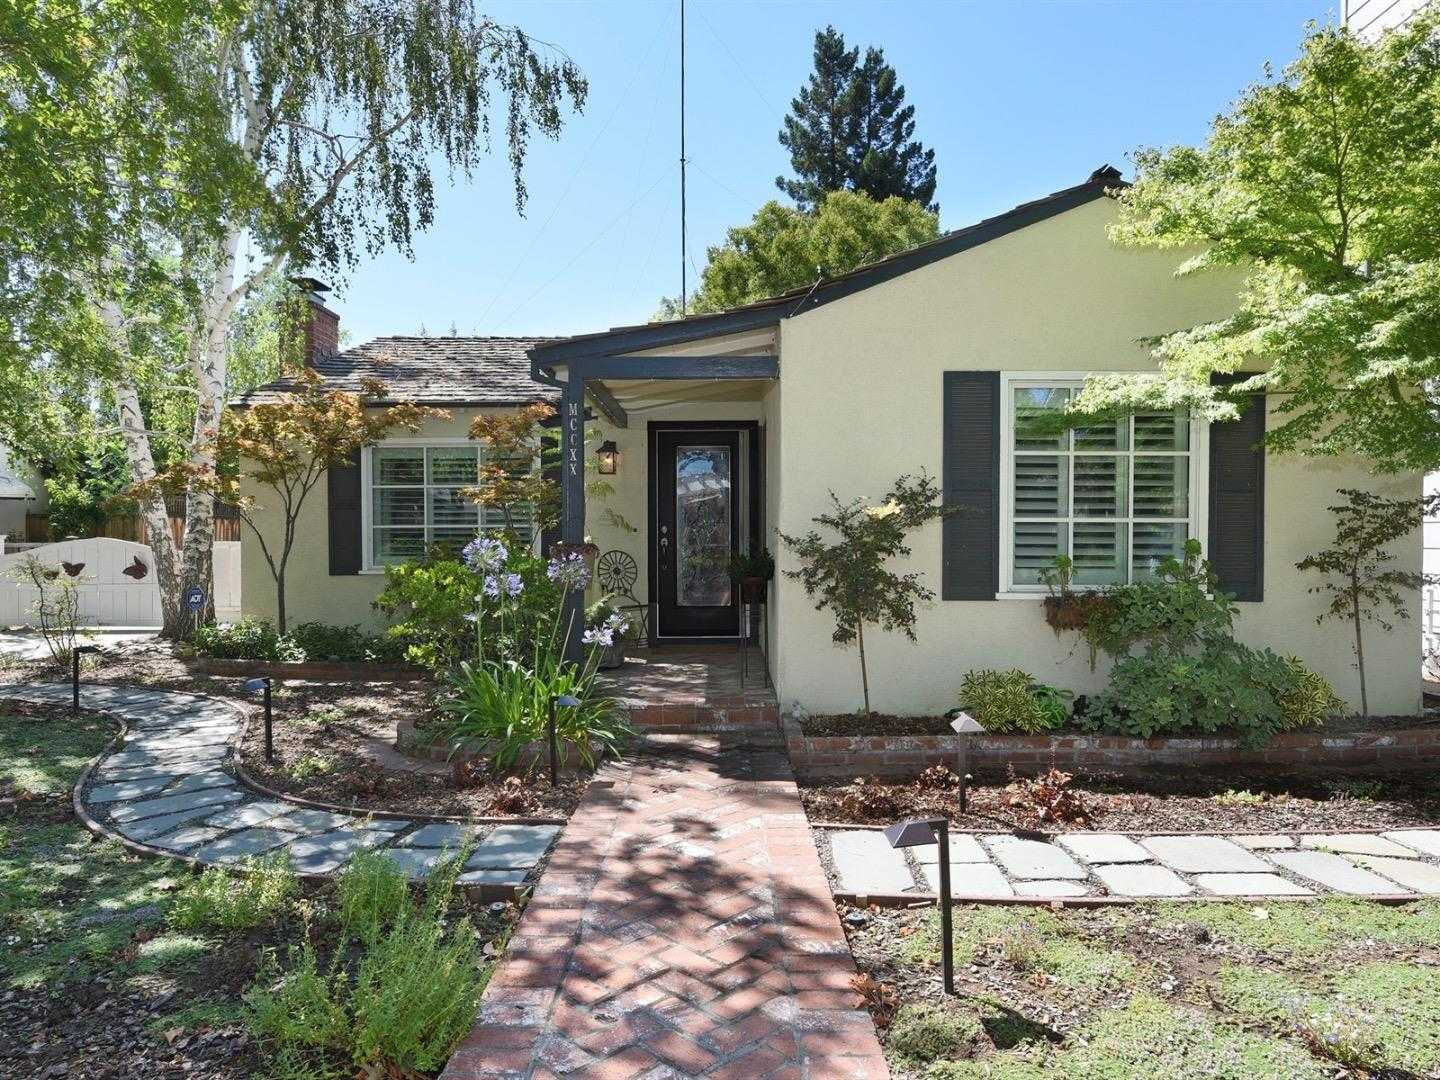 $1,349,000 - 3Br/2Ba -  for Sale in San Jose